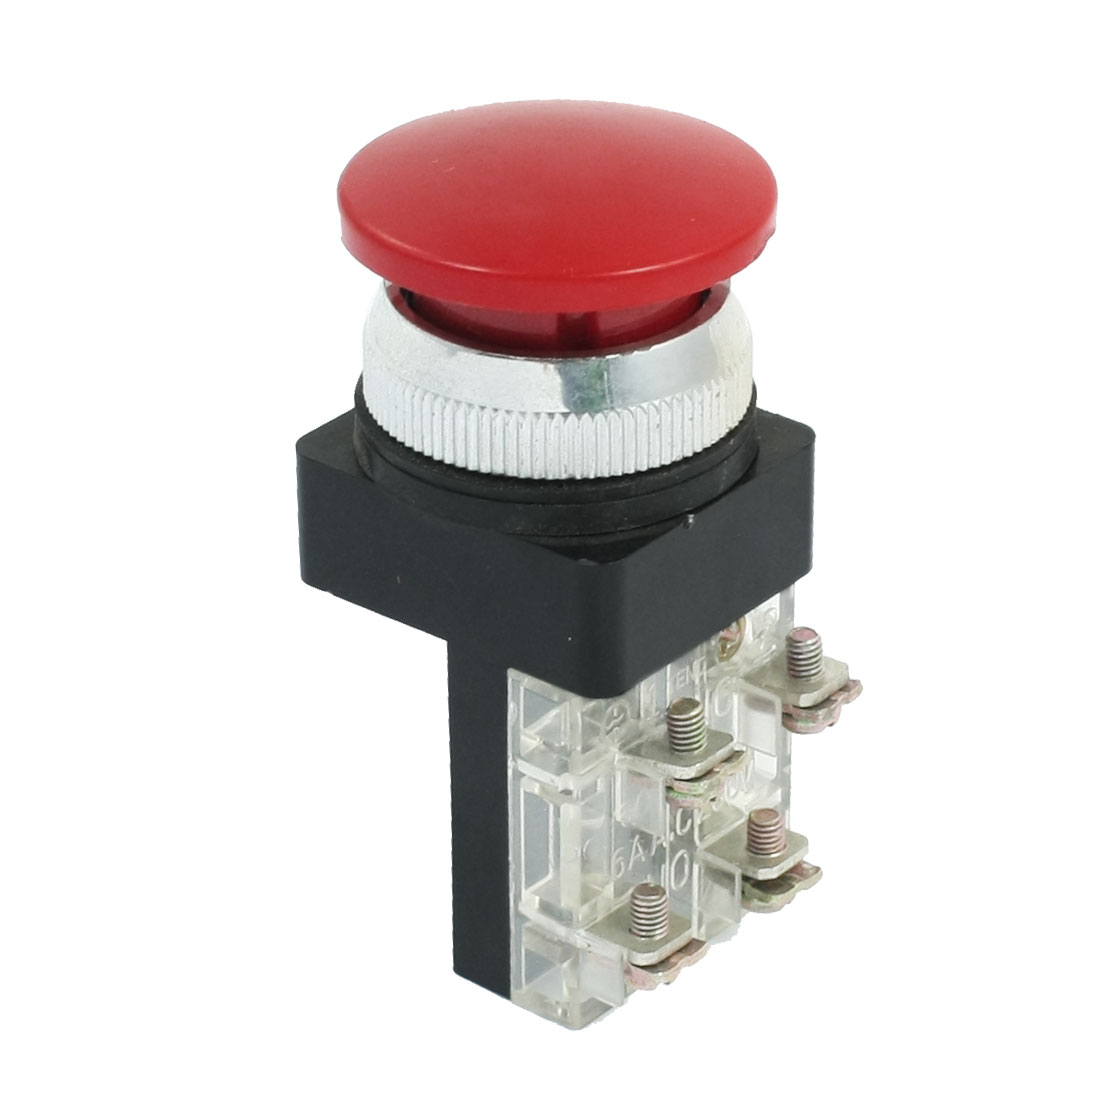 AC 250V 6A NO NC 4 Terminal Emergency Stop Momentary Mushroom Push Button Switch